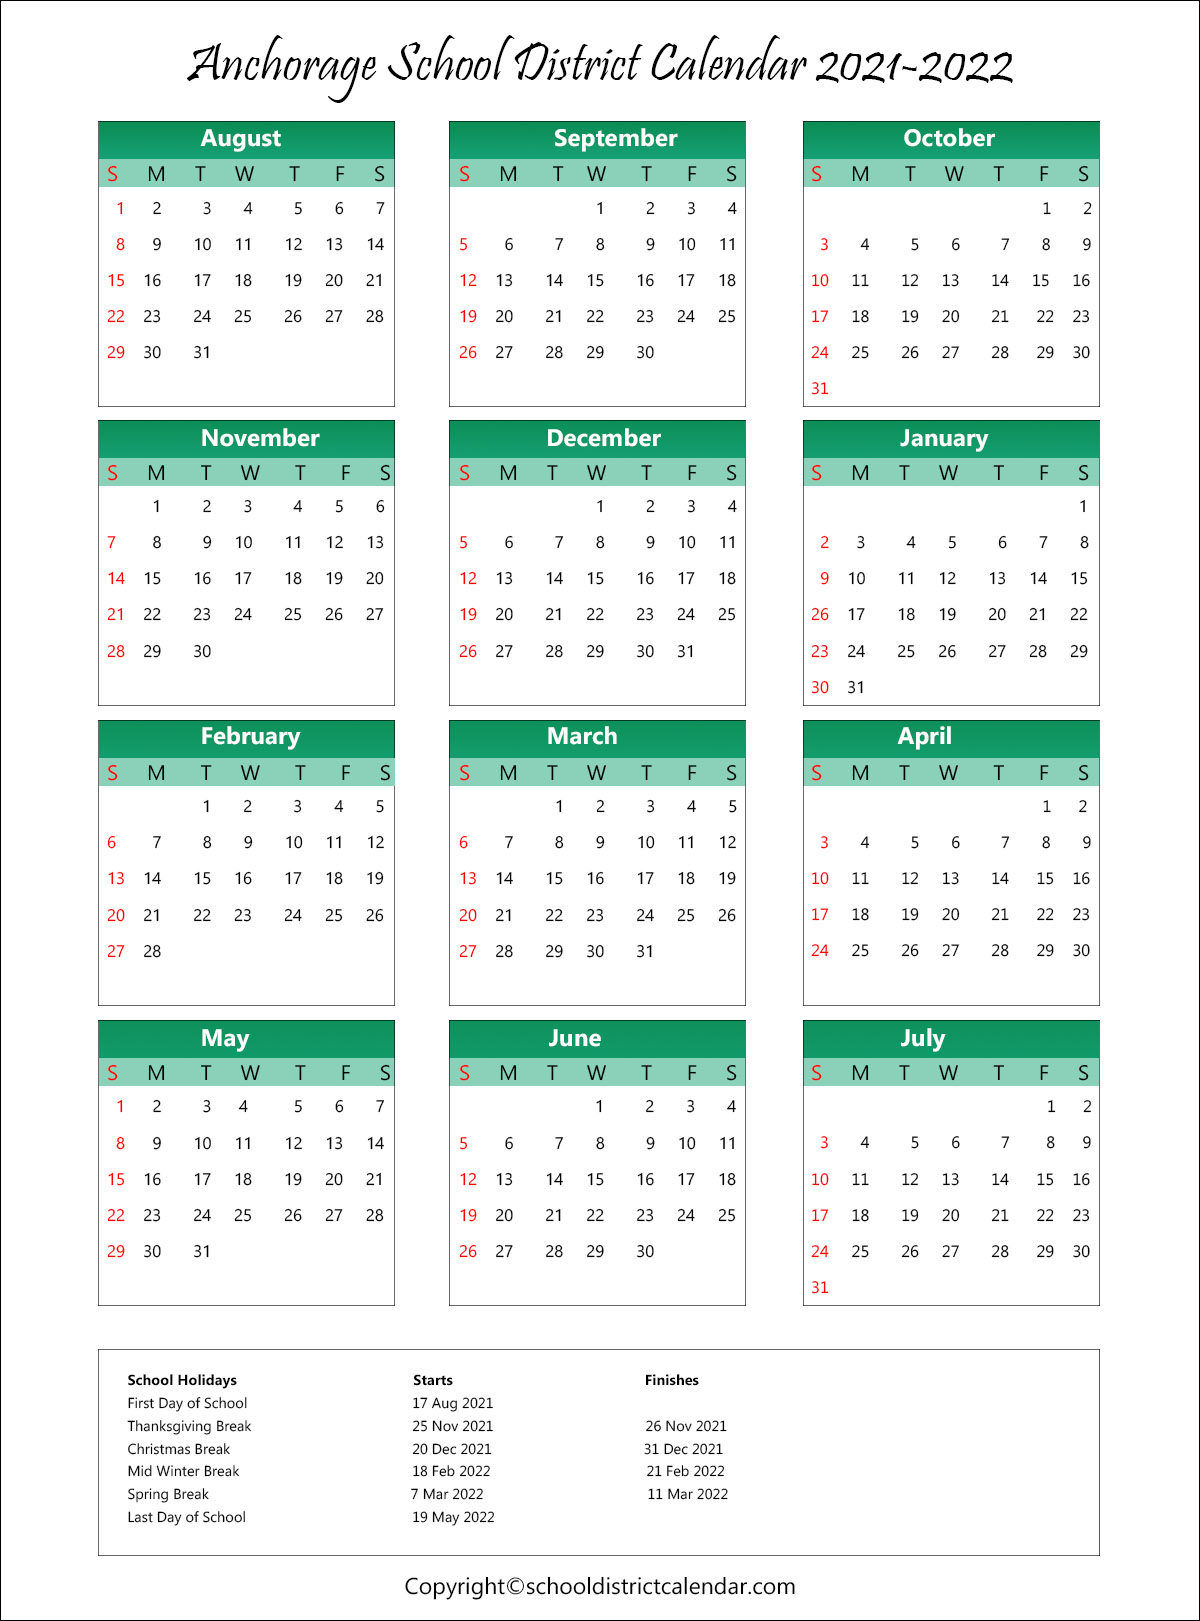 Anchorage School District Calendar 2021-22 Anchorage School District Calendar Holidays 2021 2022